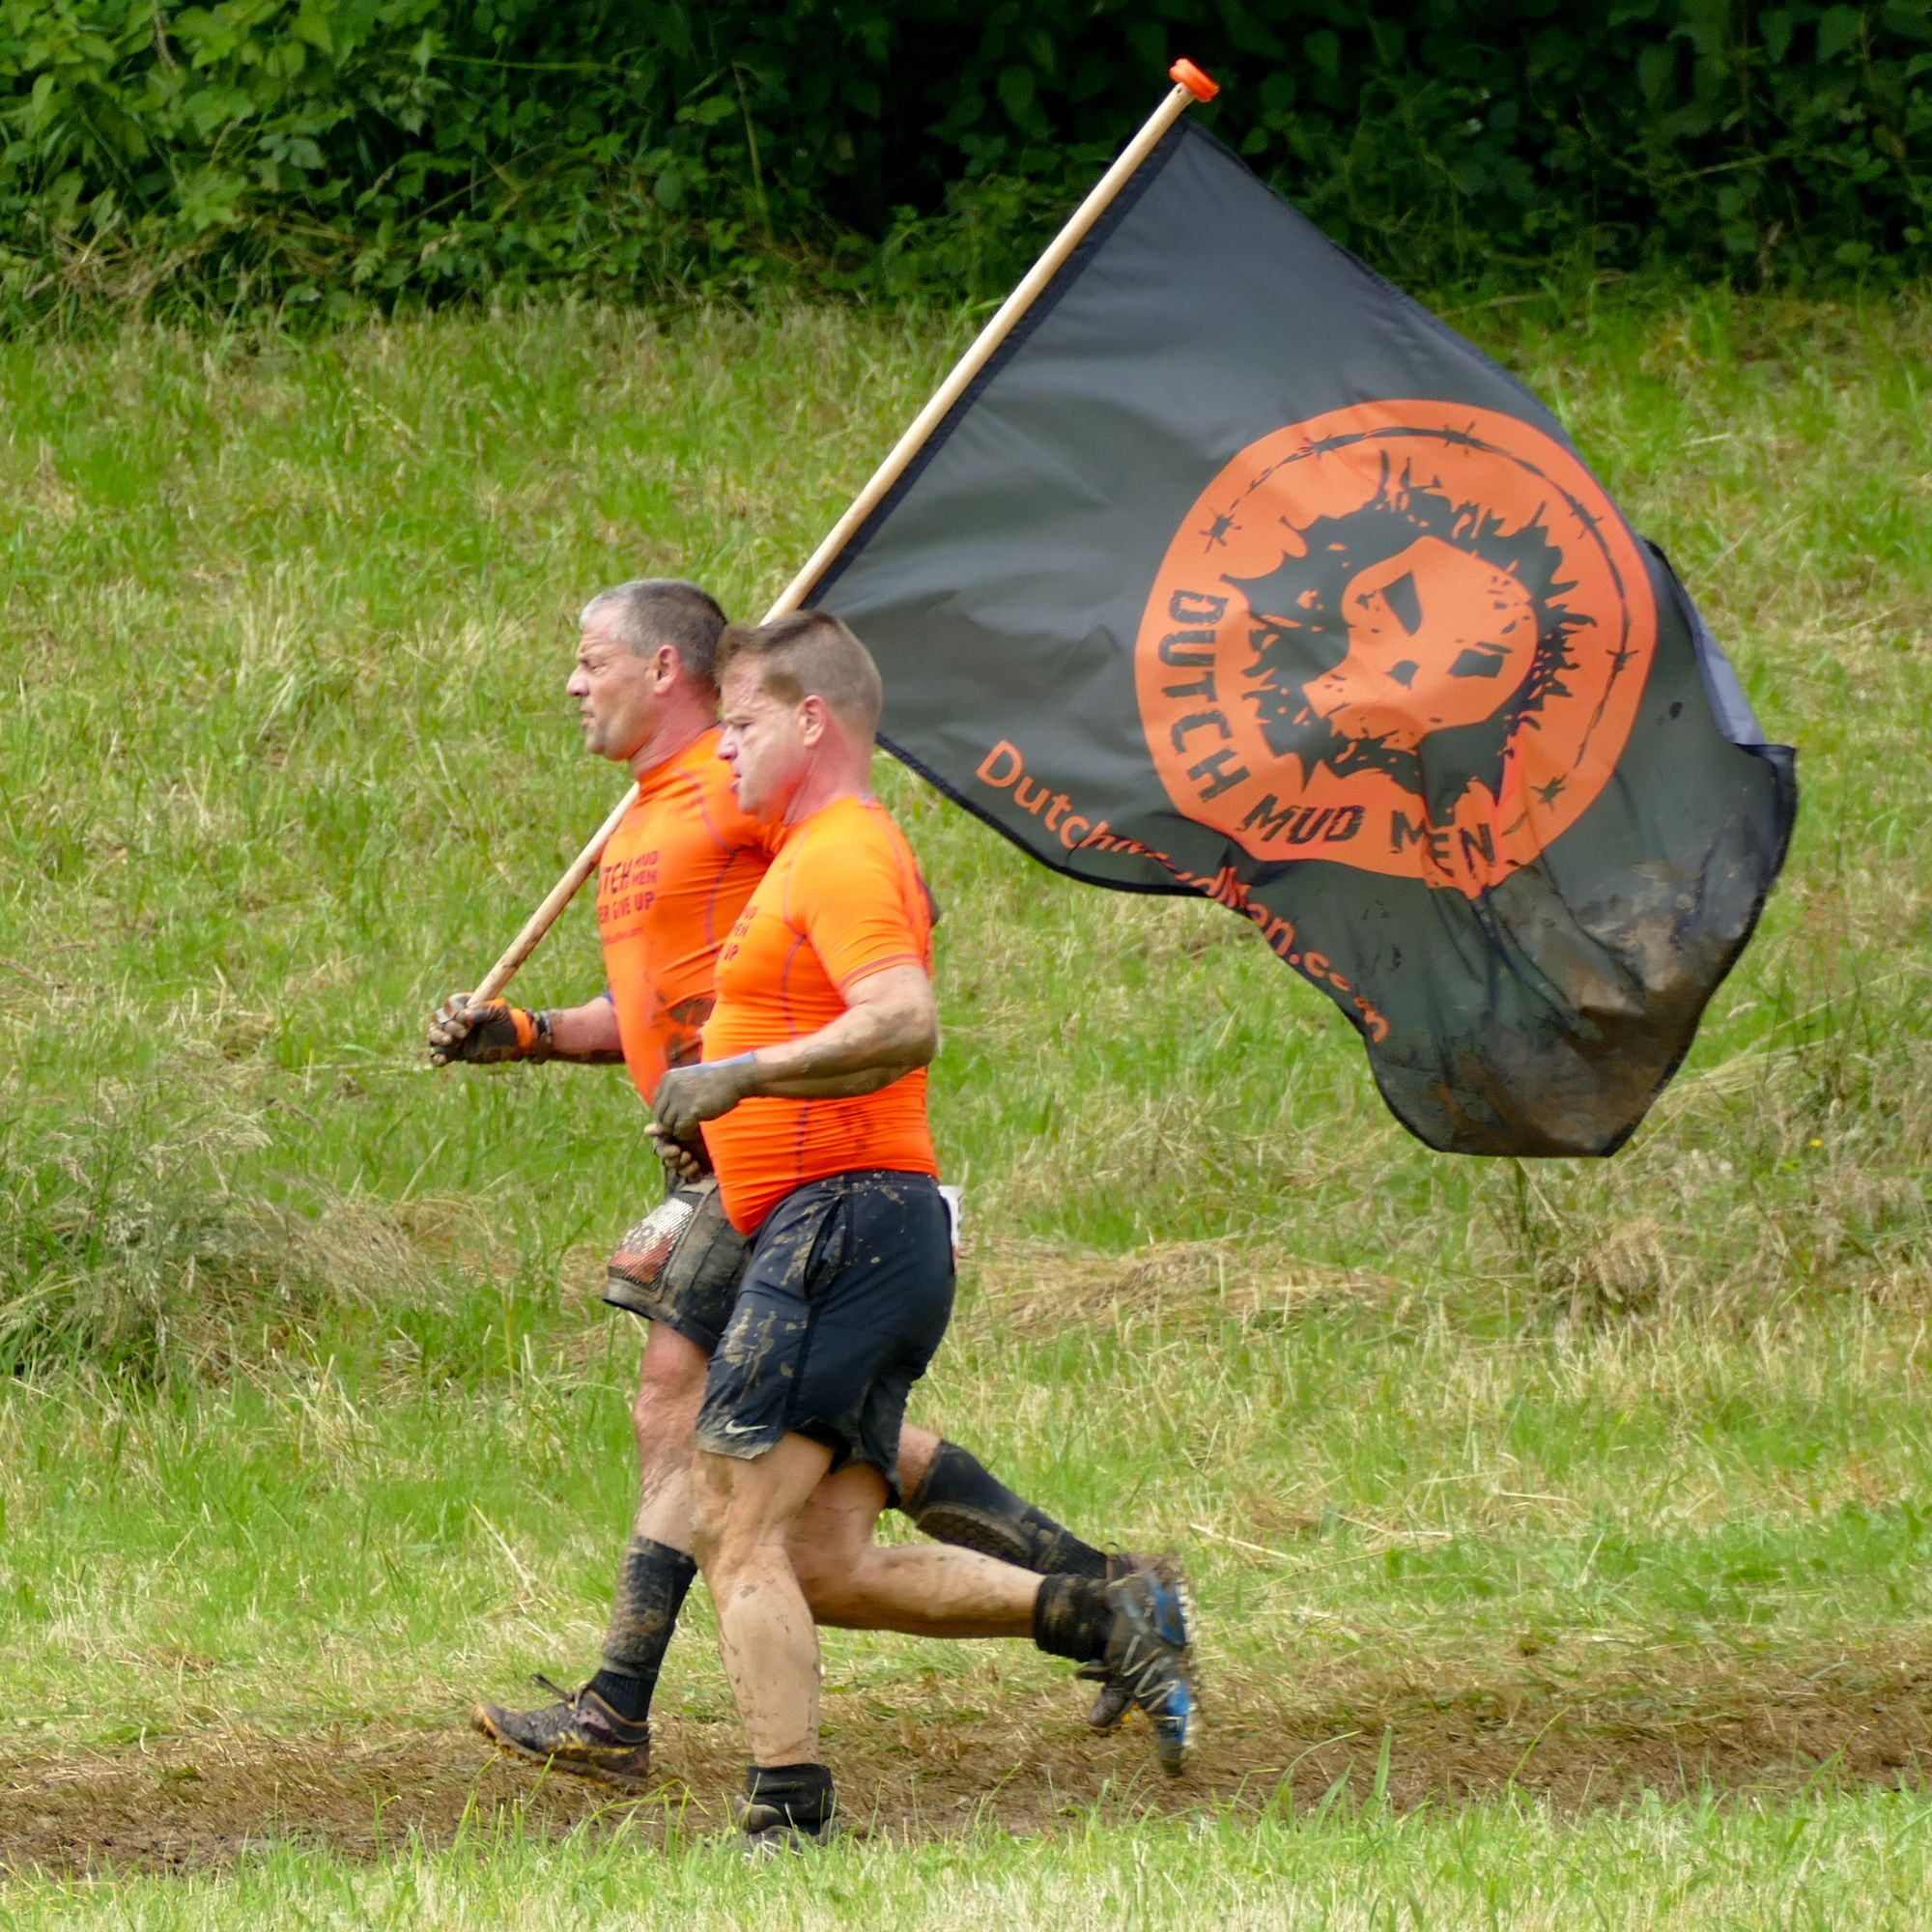 "Team ""Dutch Mud Men"" mit Flagge"